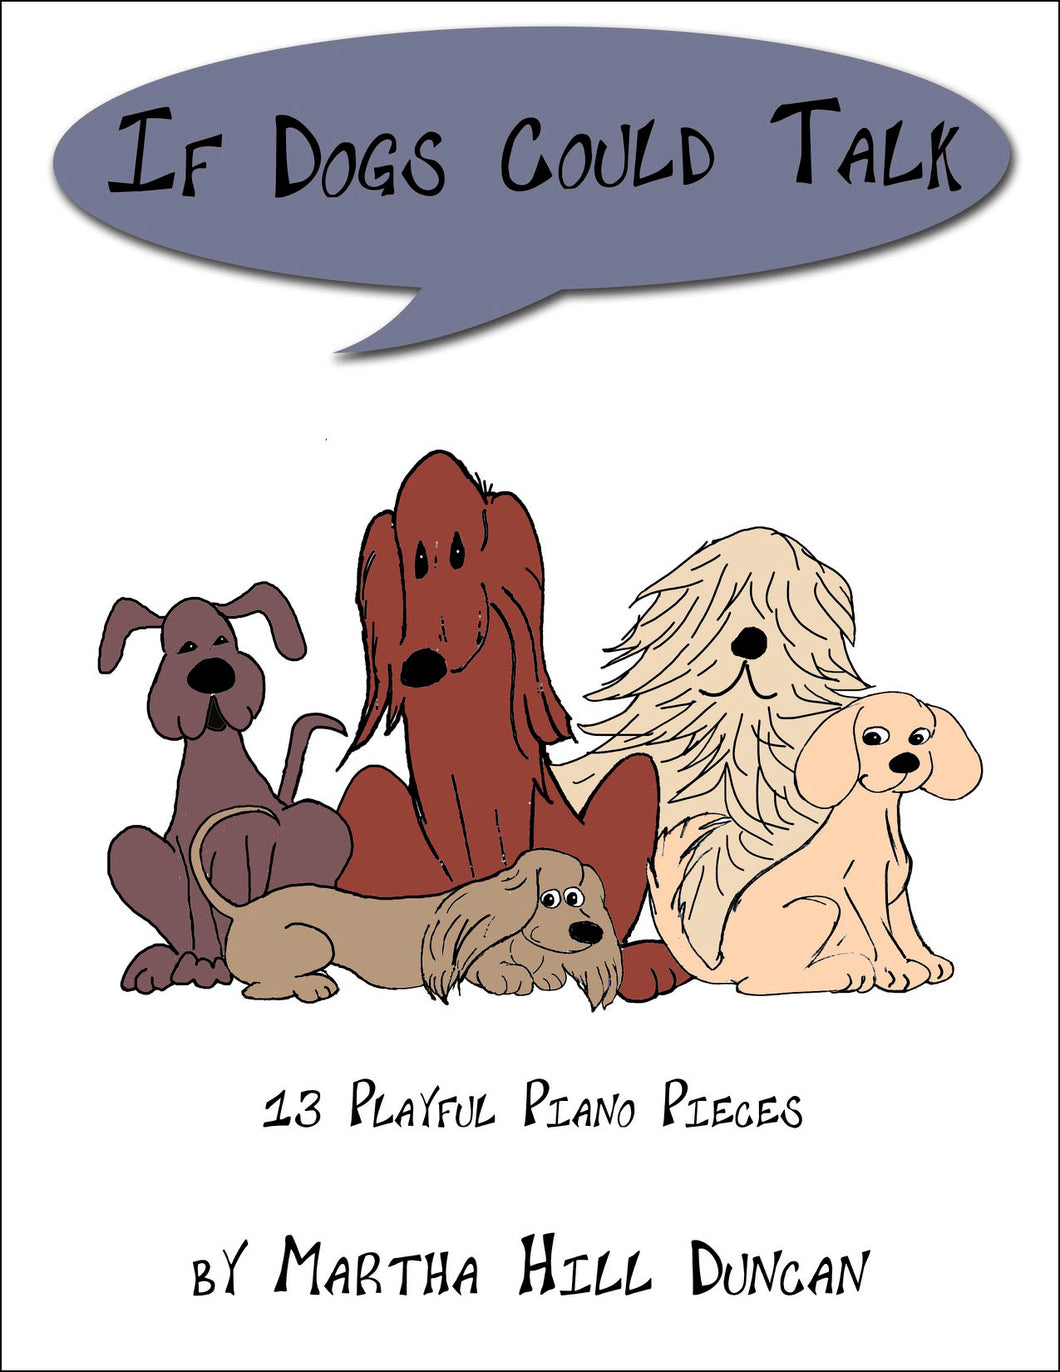 PARTY PLANS - Piano Solo from IF DOGS COULD TALK